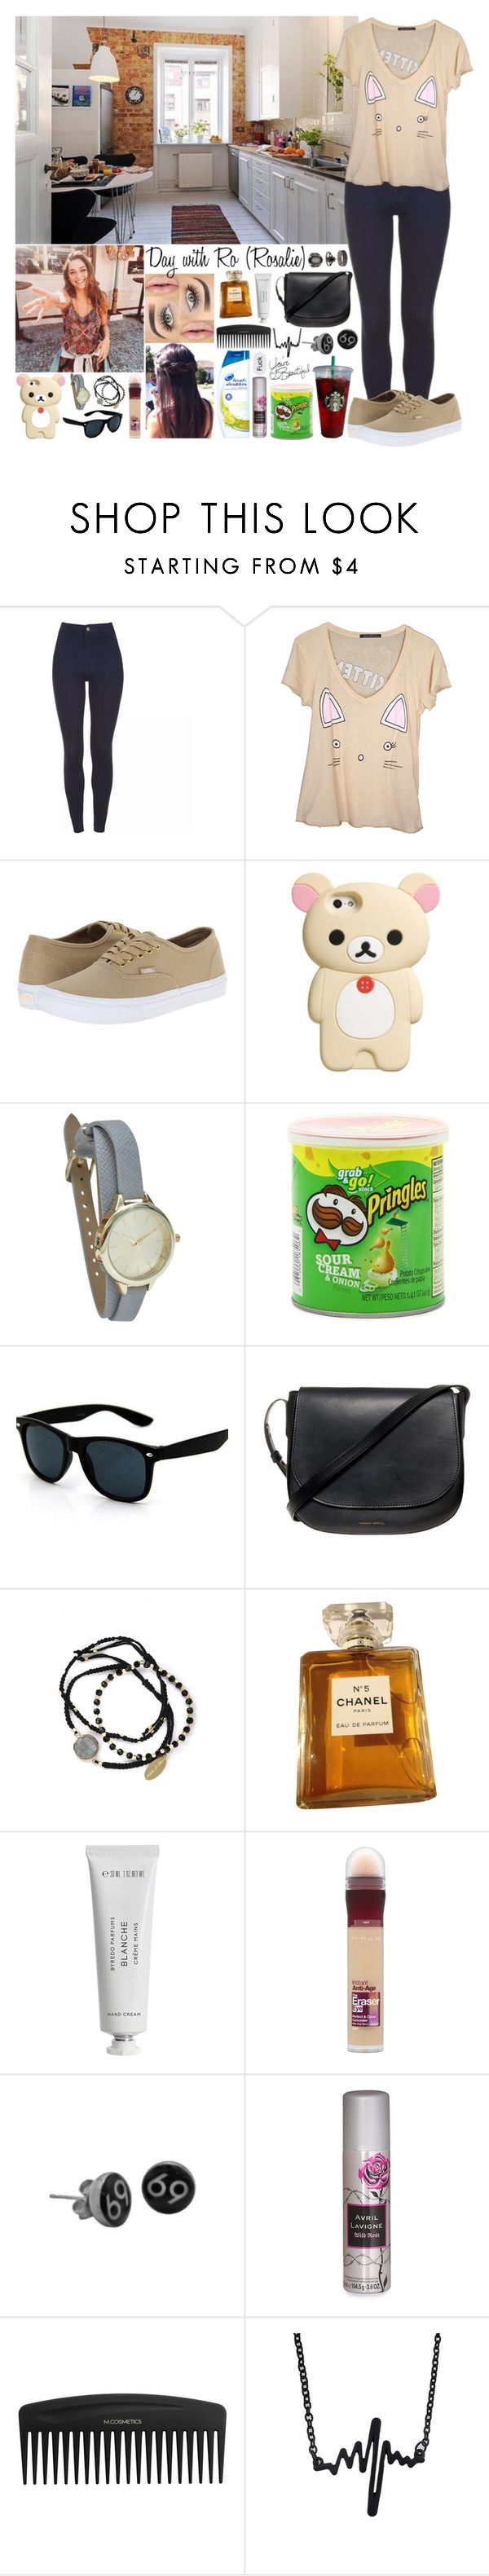 """""""Sin título #1238"""" by gisella-jb-pintos ❤ liked on Polyvore featuring Vans, Retrò, Mansur Gavriel, Feather & Stone, Chanel, Byredo, Maybelline, SOLD Design Lab, Topshop and LIST"""